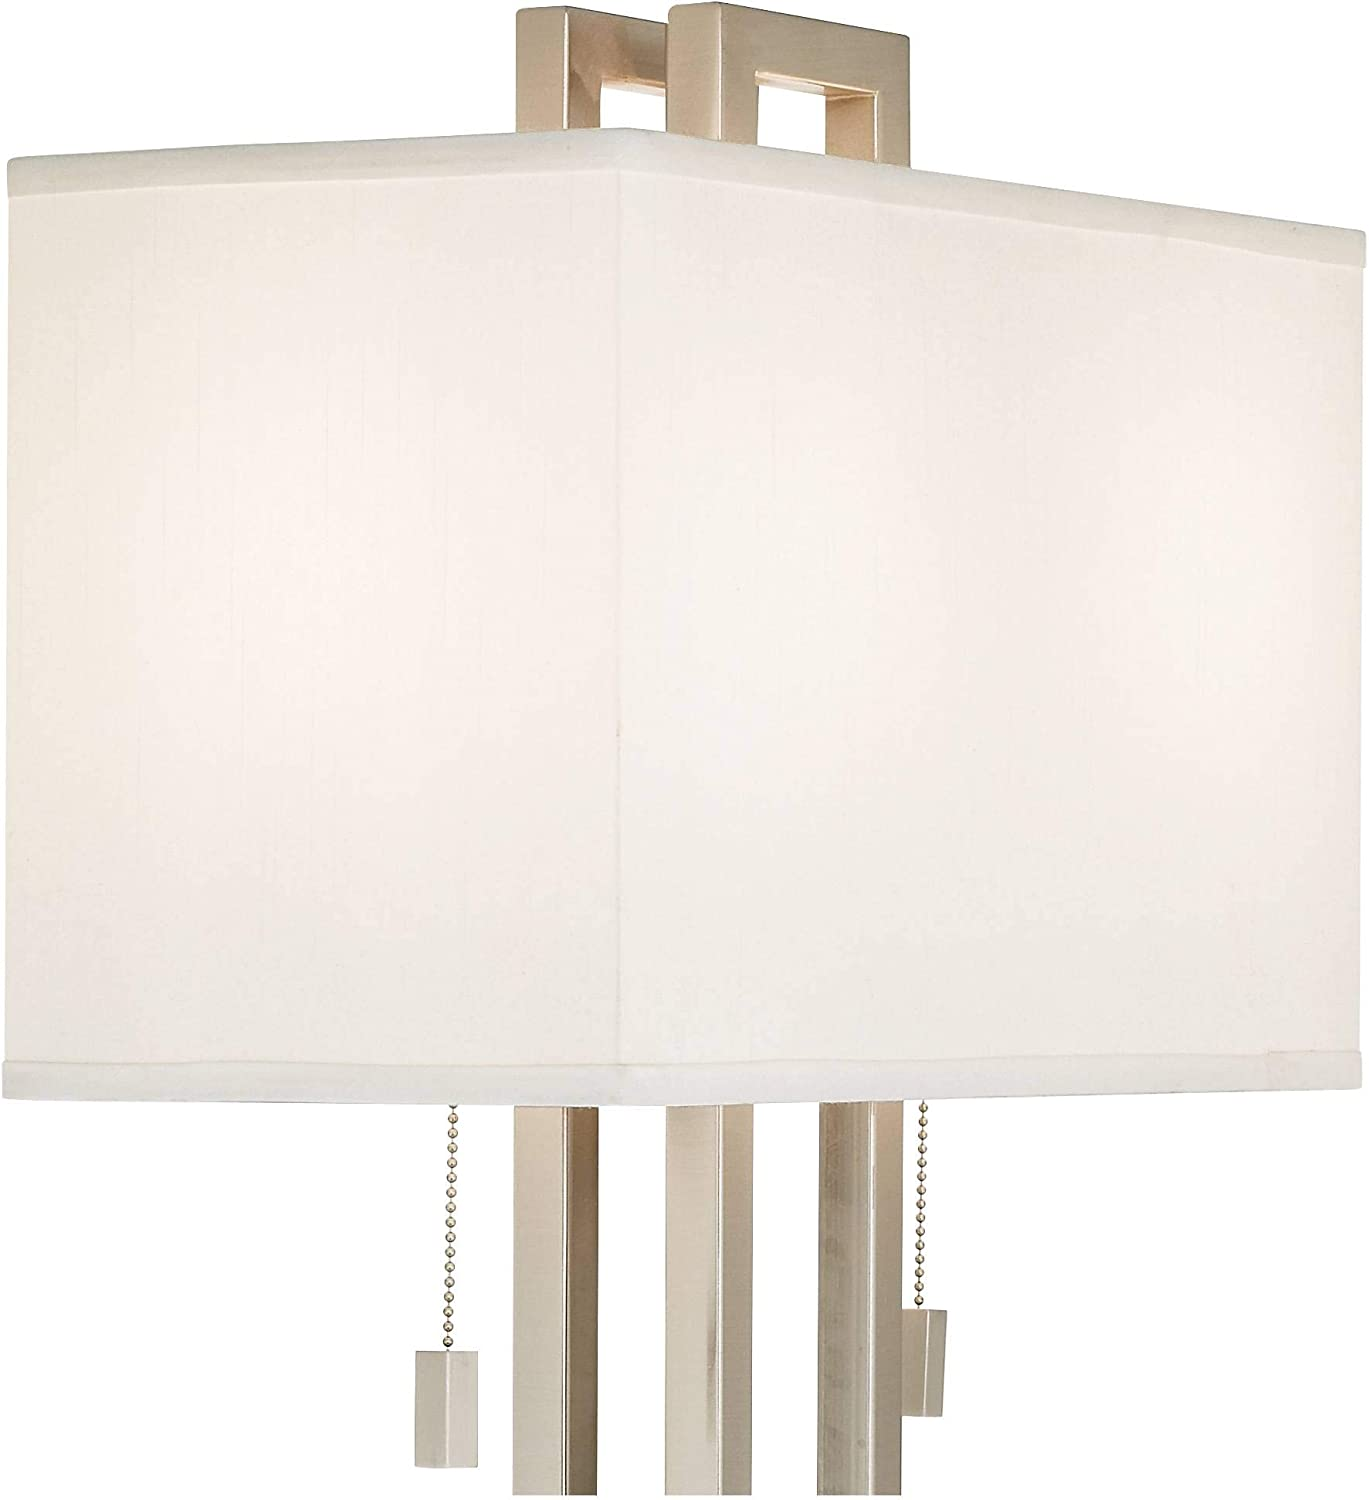 Modern Table Lamp Brushed Nickel Open Rectangle White Shade for Living Room Family Bedroom Bedside Nightstand - Possini Euro Design Brushed Nickel Rectangle